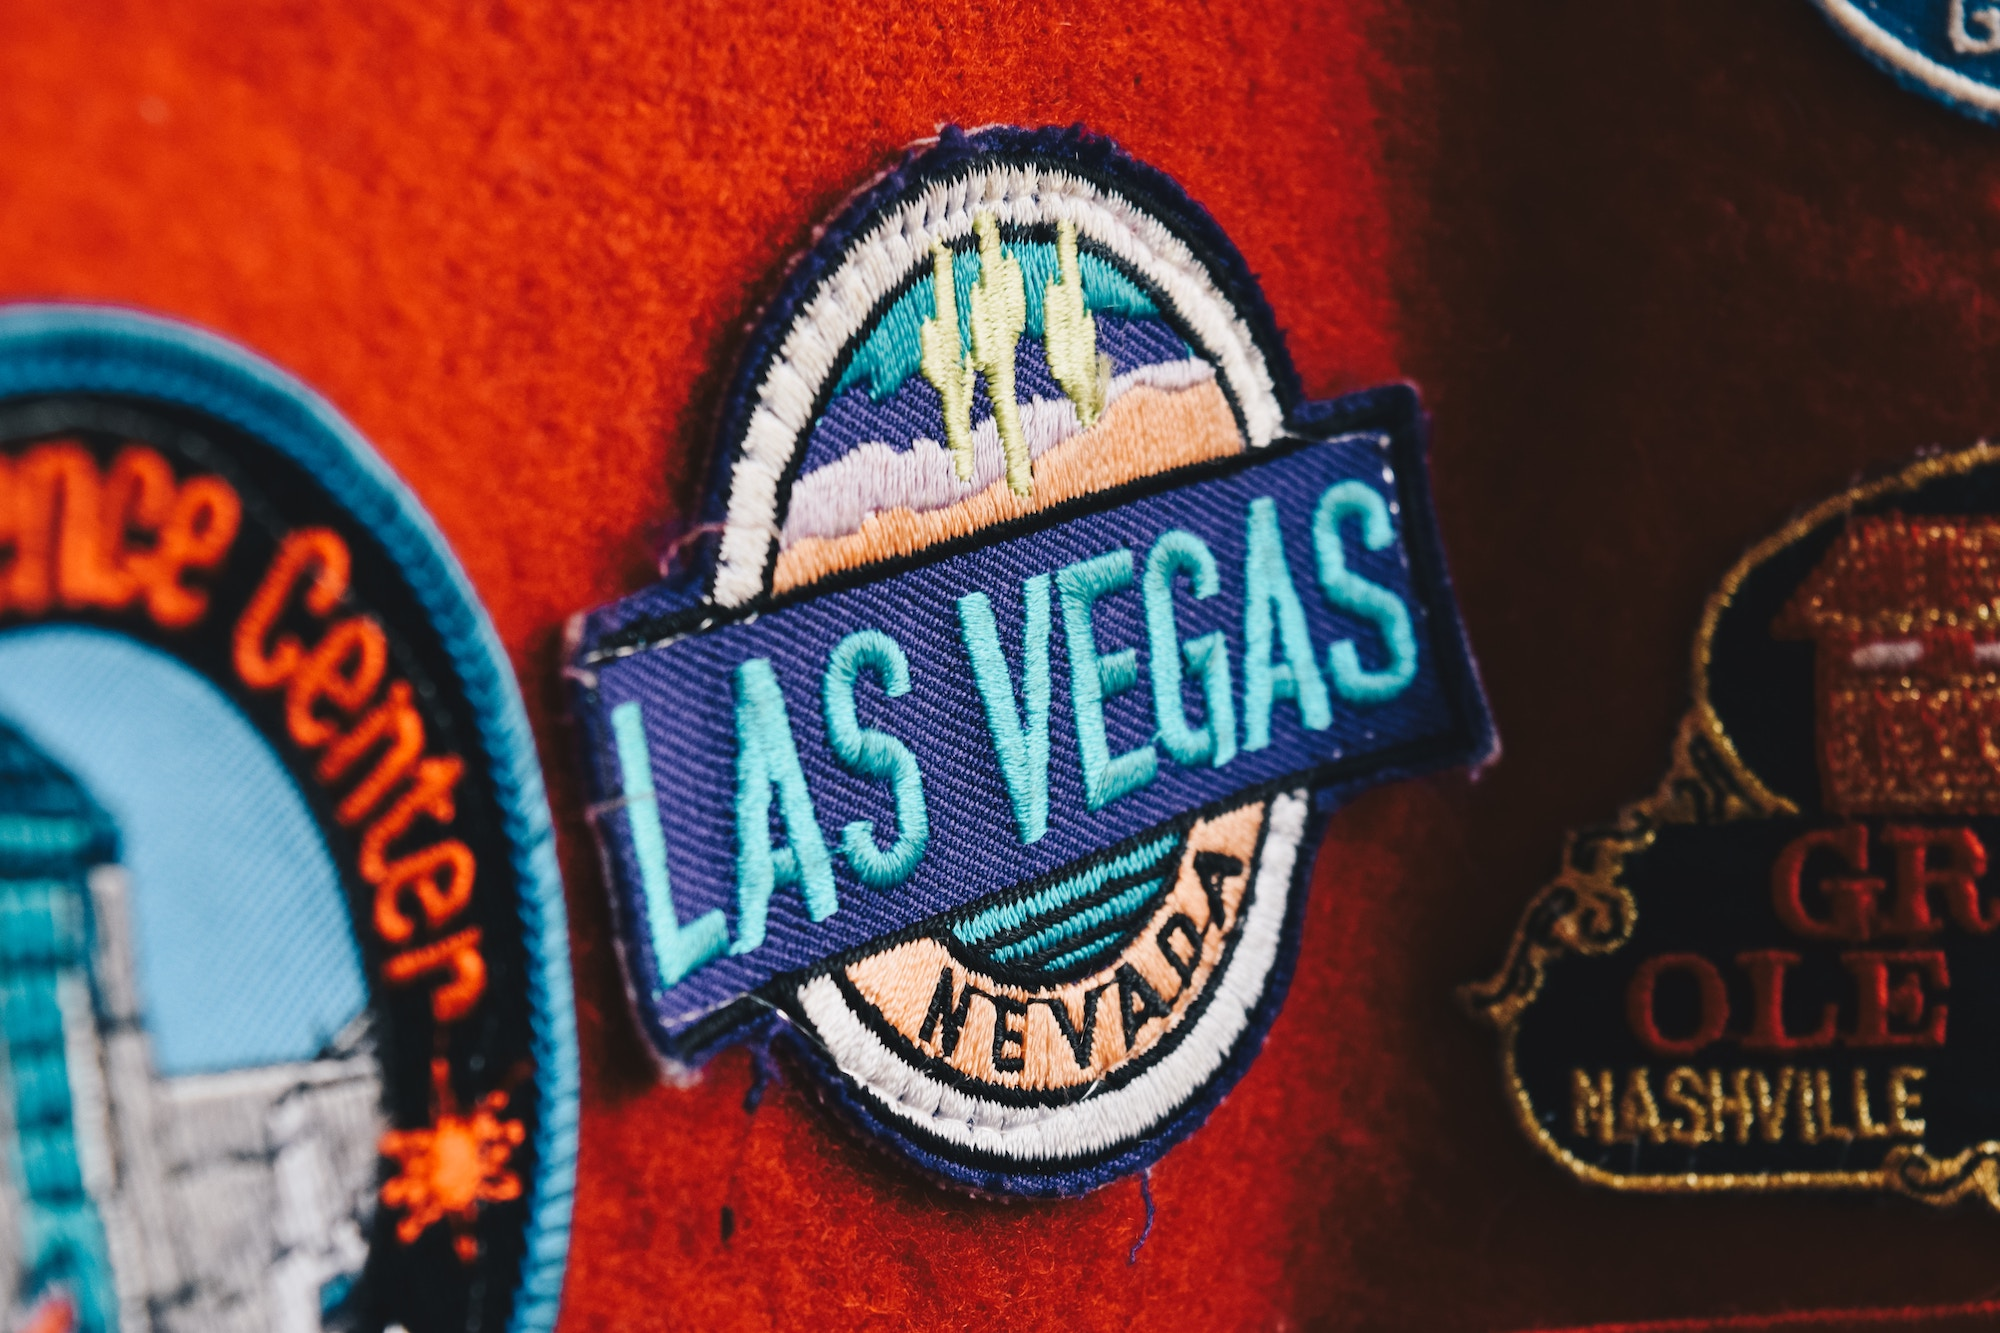 Las Vegas Badge